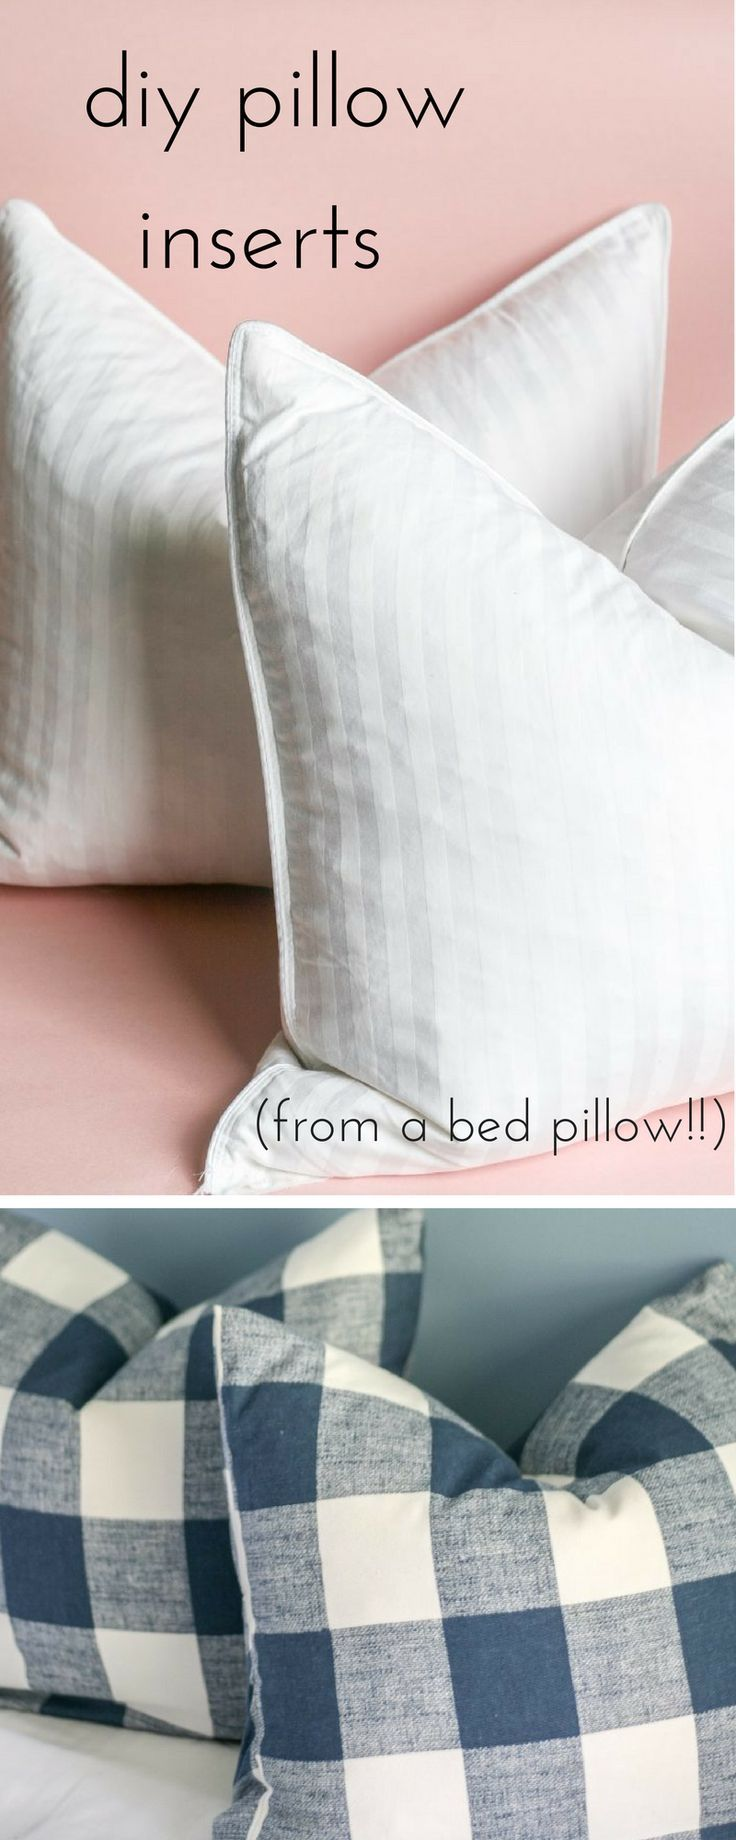 The right pillow insert can make all the difference with your pillow decor.  Find out how to easily make your own!  #diy #homedecorideas #pillows #decorate